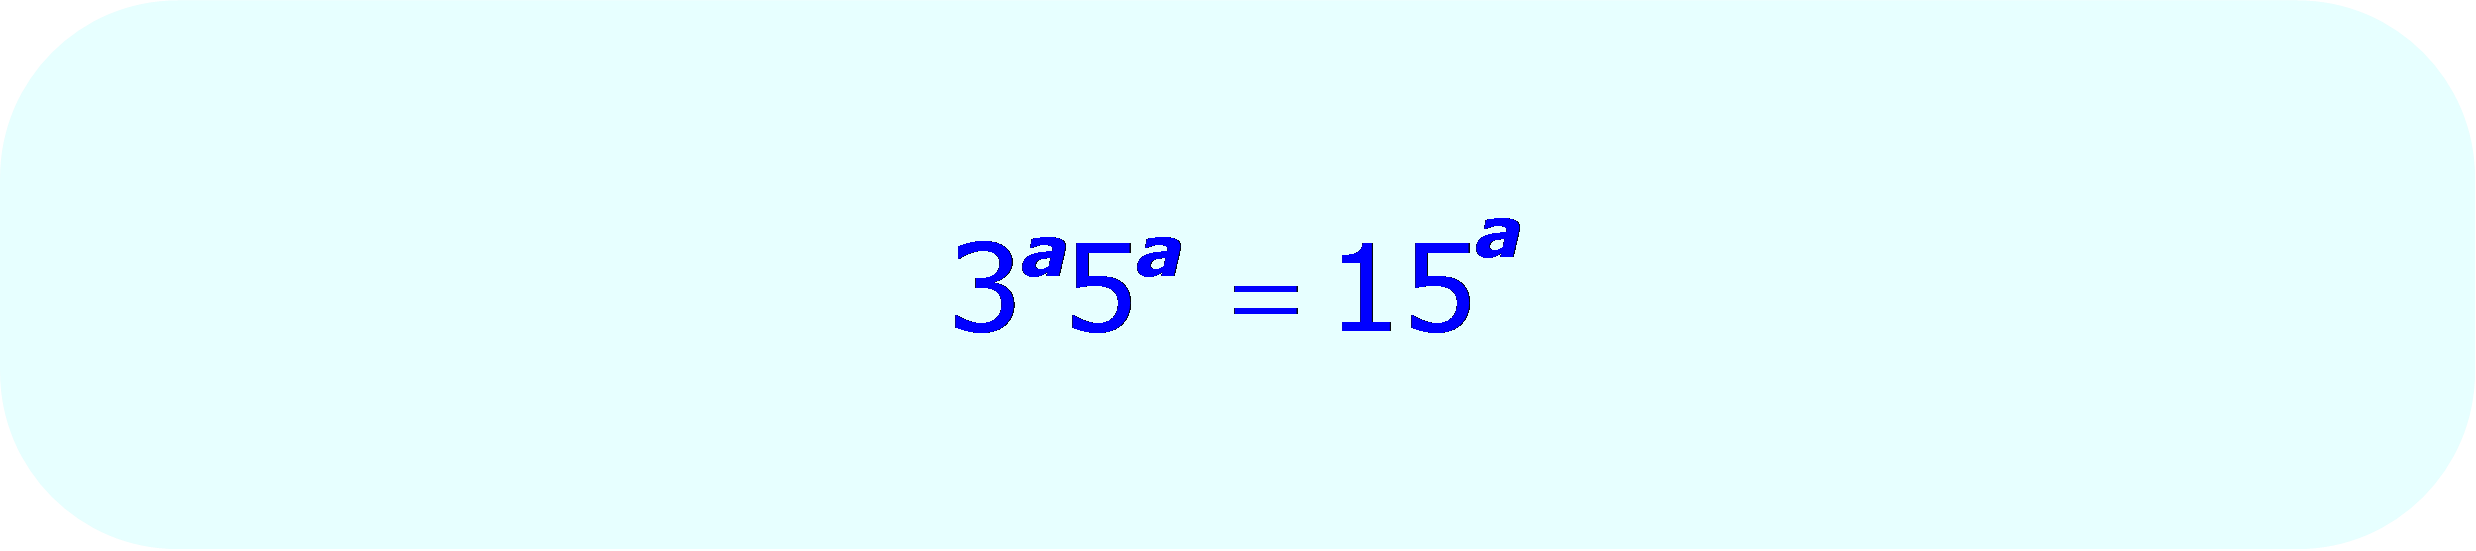 Final Answer - Rewriting the entire expression so there is only one base, when 